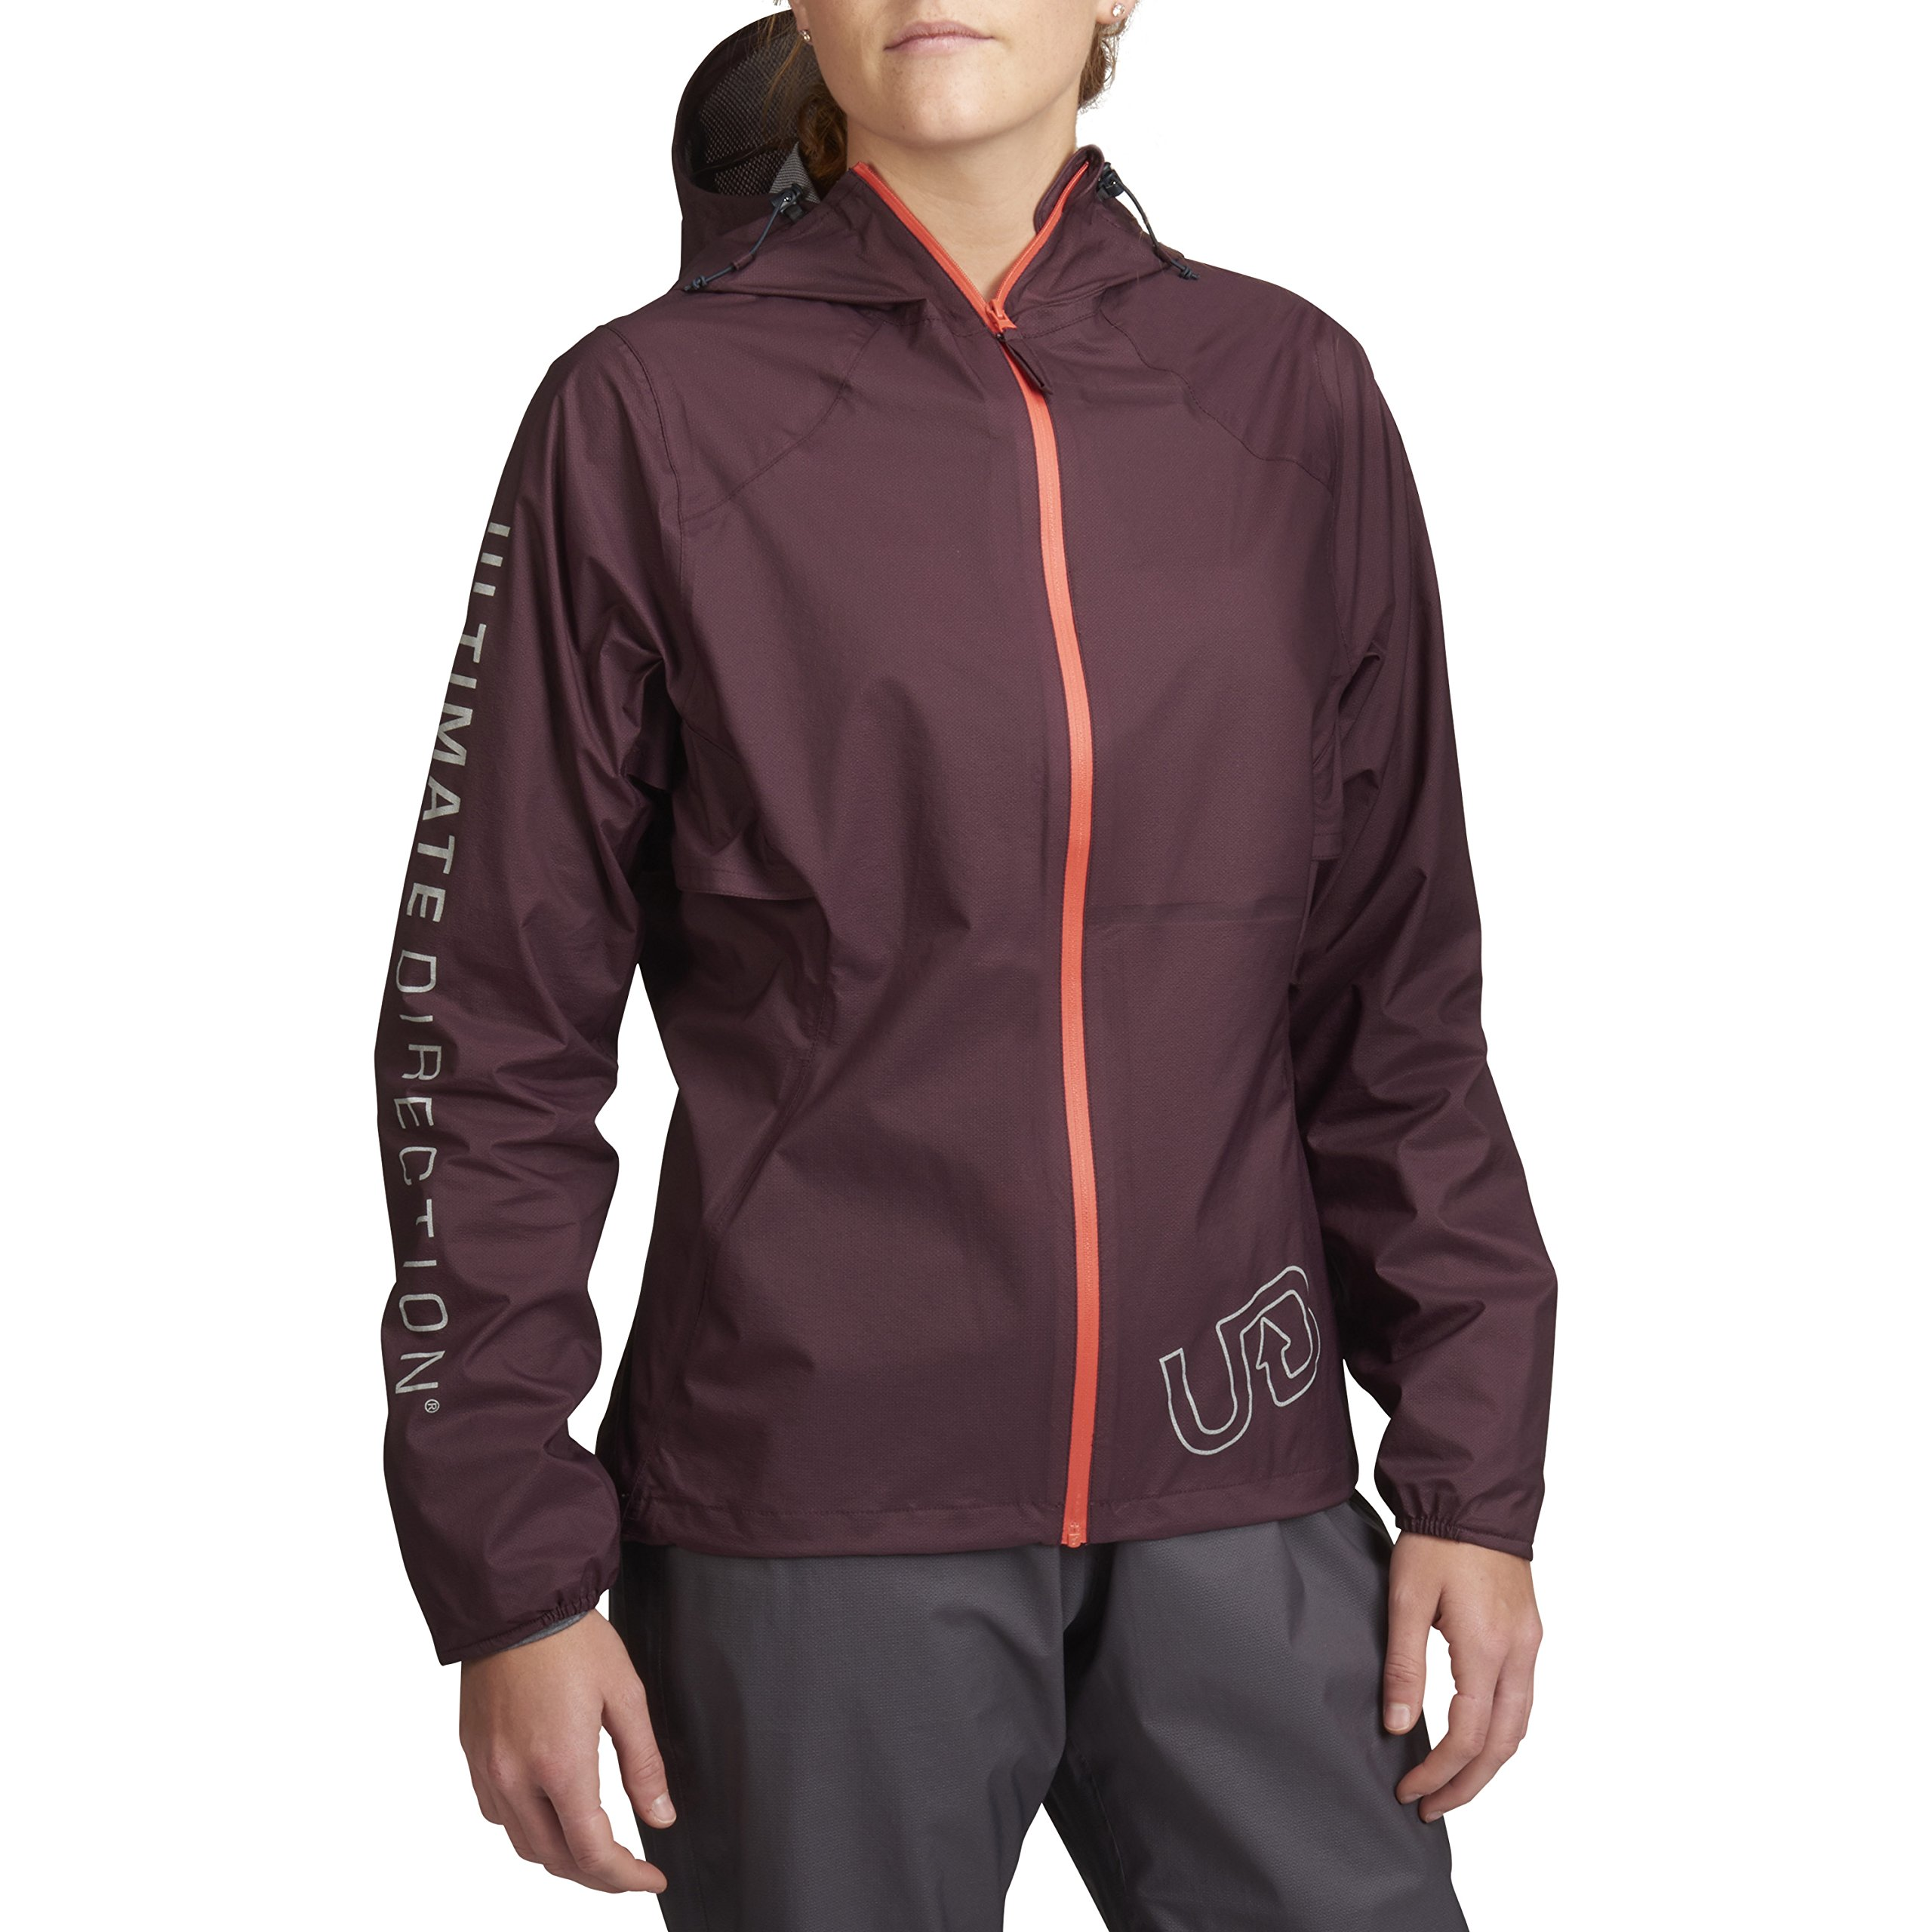 Ultimate Direction Women's Ultra Jacket V2, Fig, Small by Ultimate Direction (Image #1)